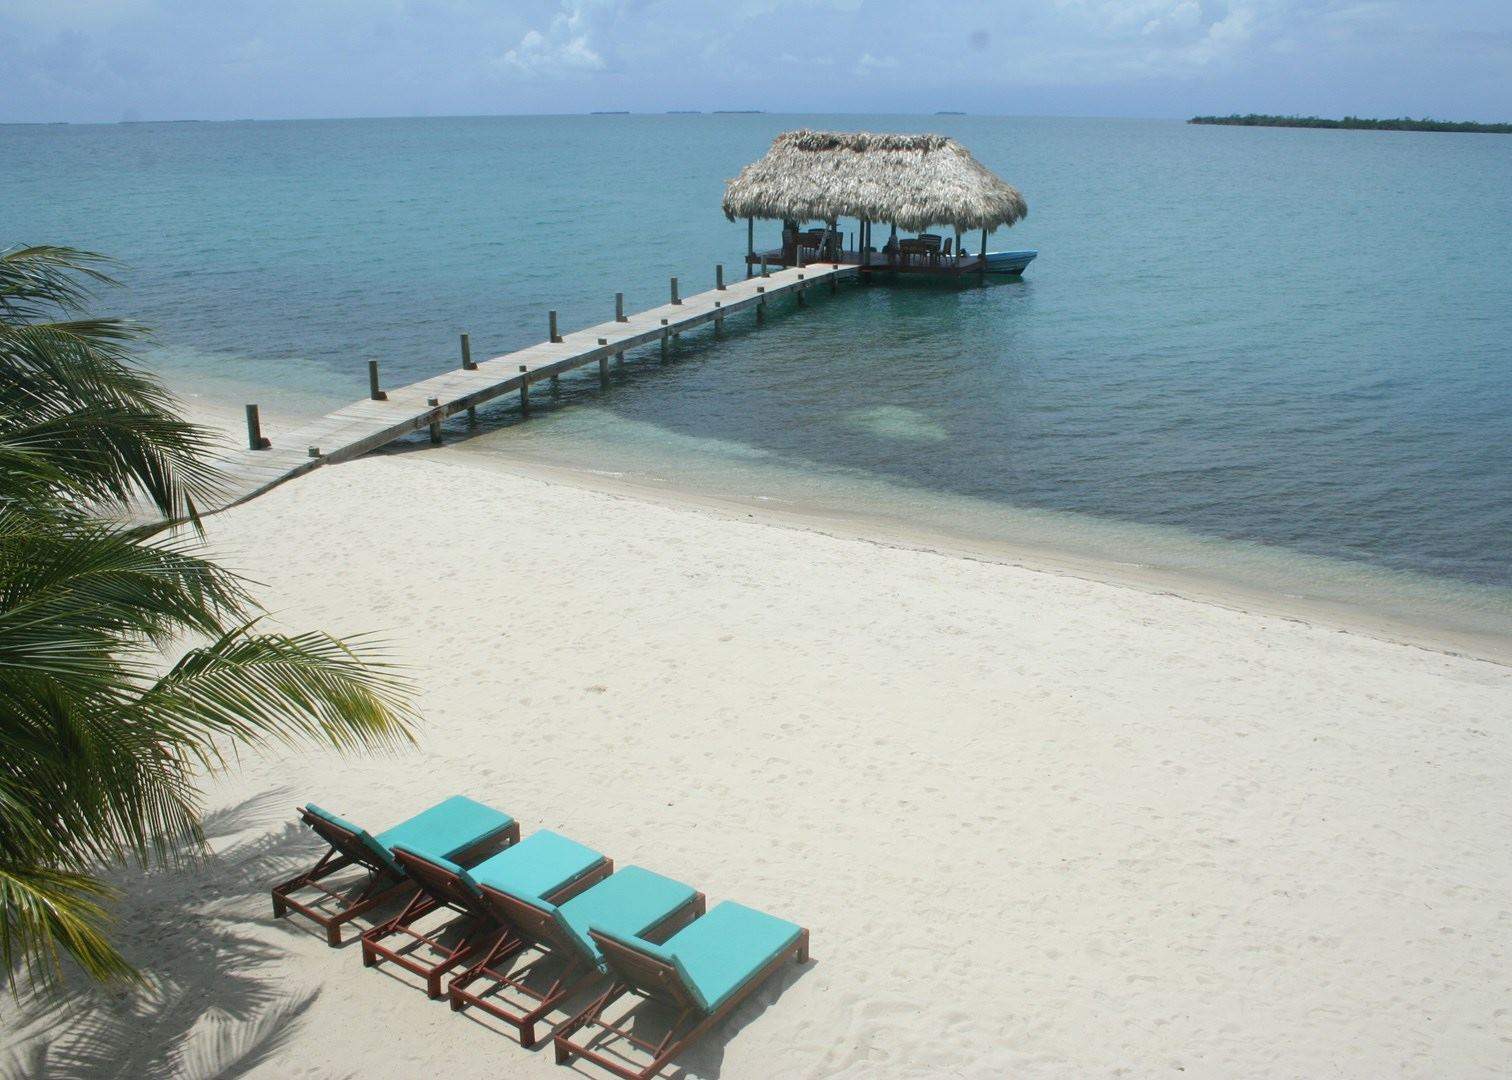 belize in november